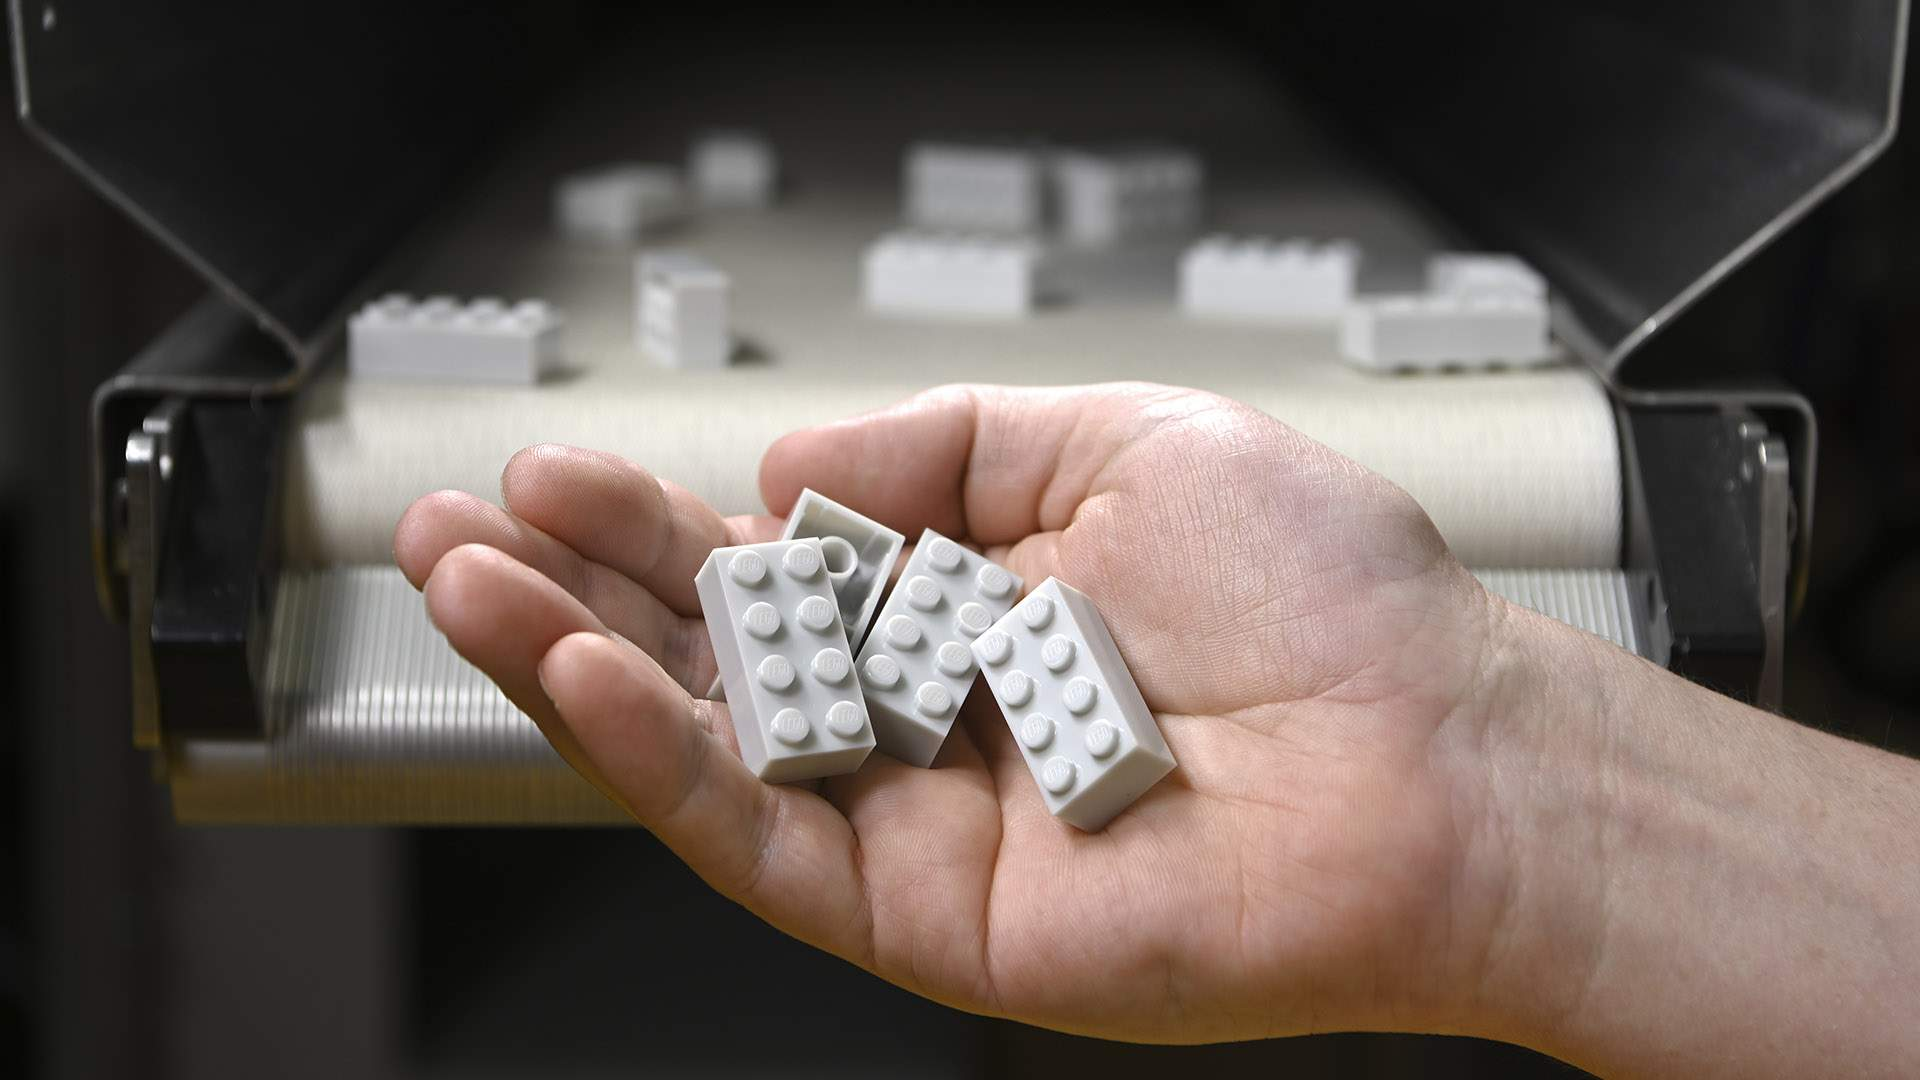 Lego Has Unveiled Its First Bricks Made From Recycled Plastic Bottles